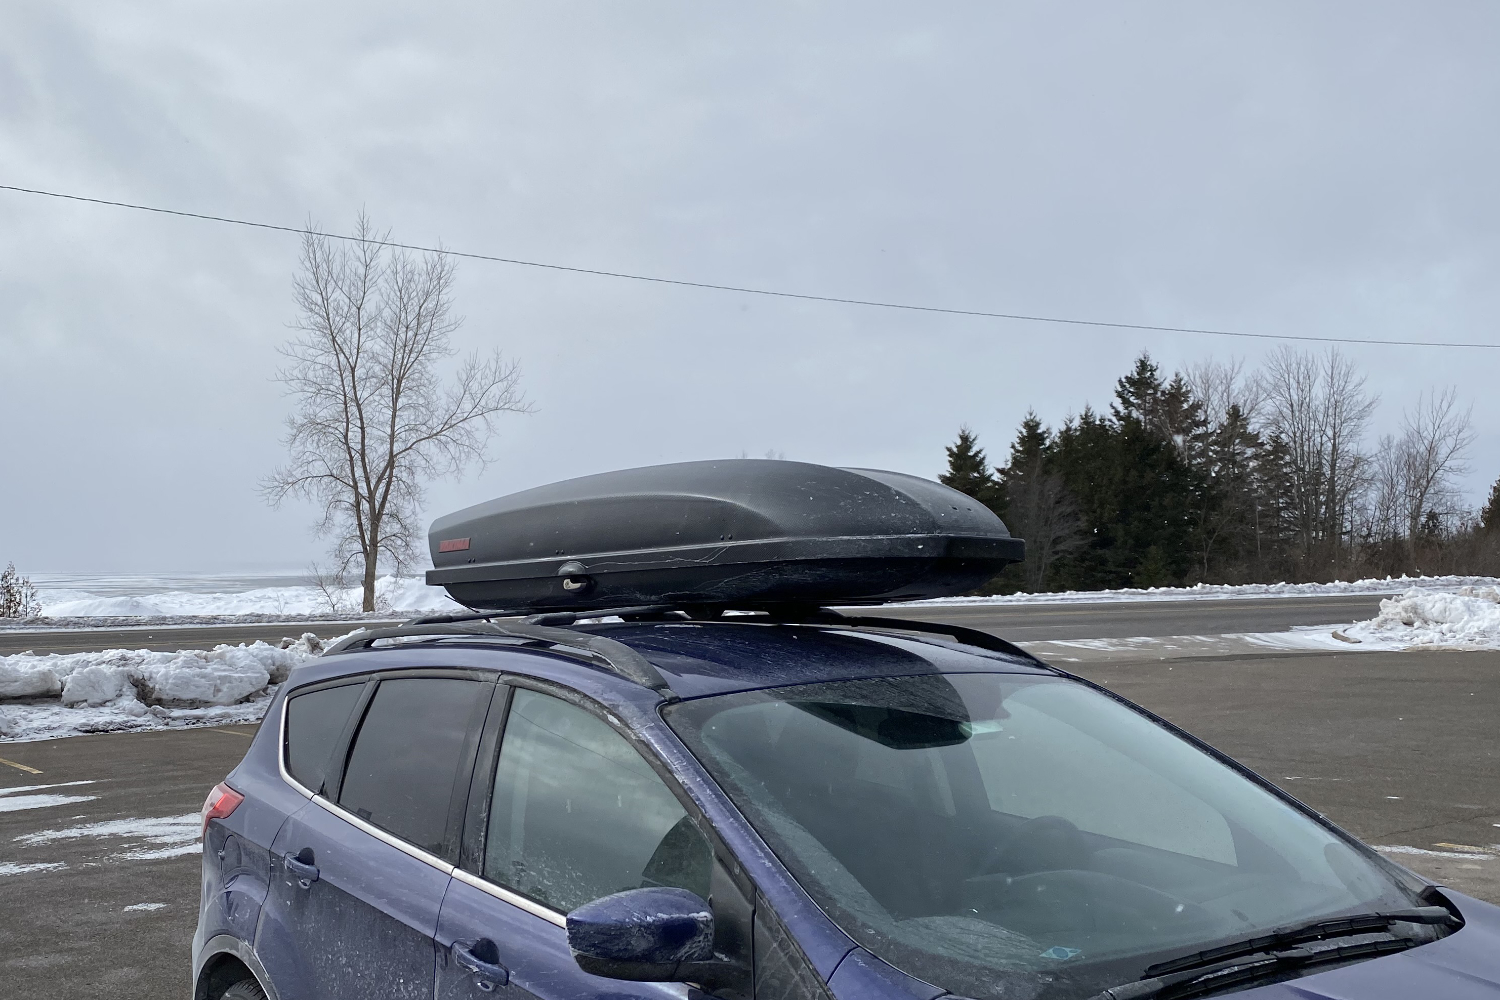 cargo box on car